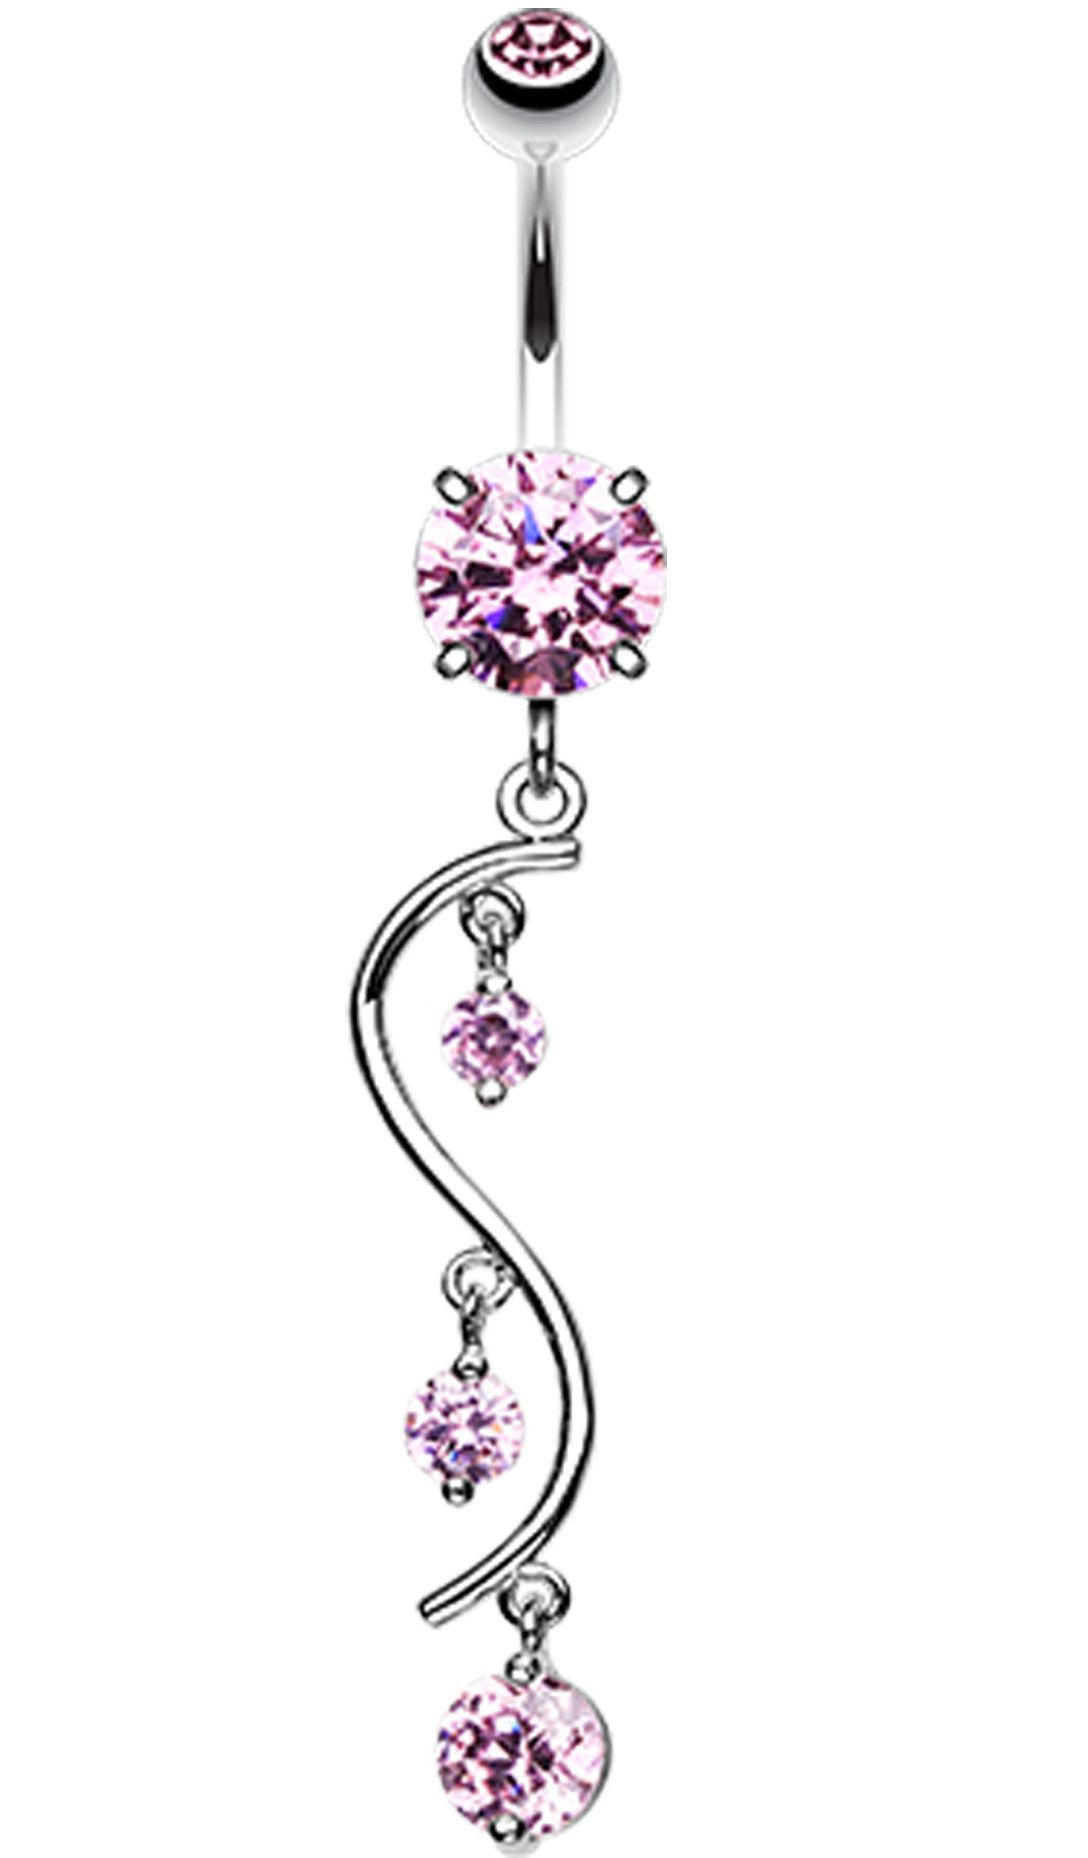 Belly piercing jewelry  Vine Swirl Sparkle Belly Button Ring   GA mm  Pink  Sold